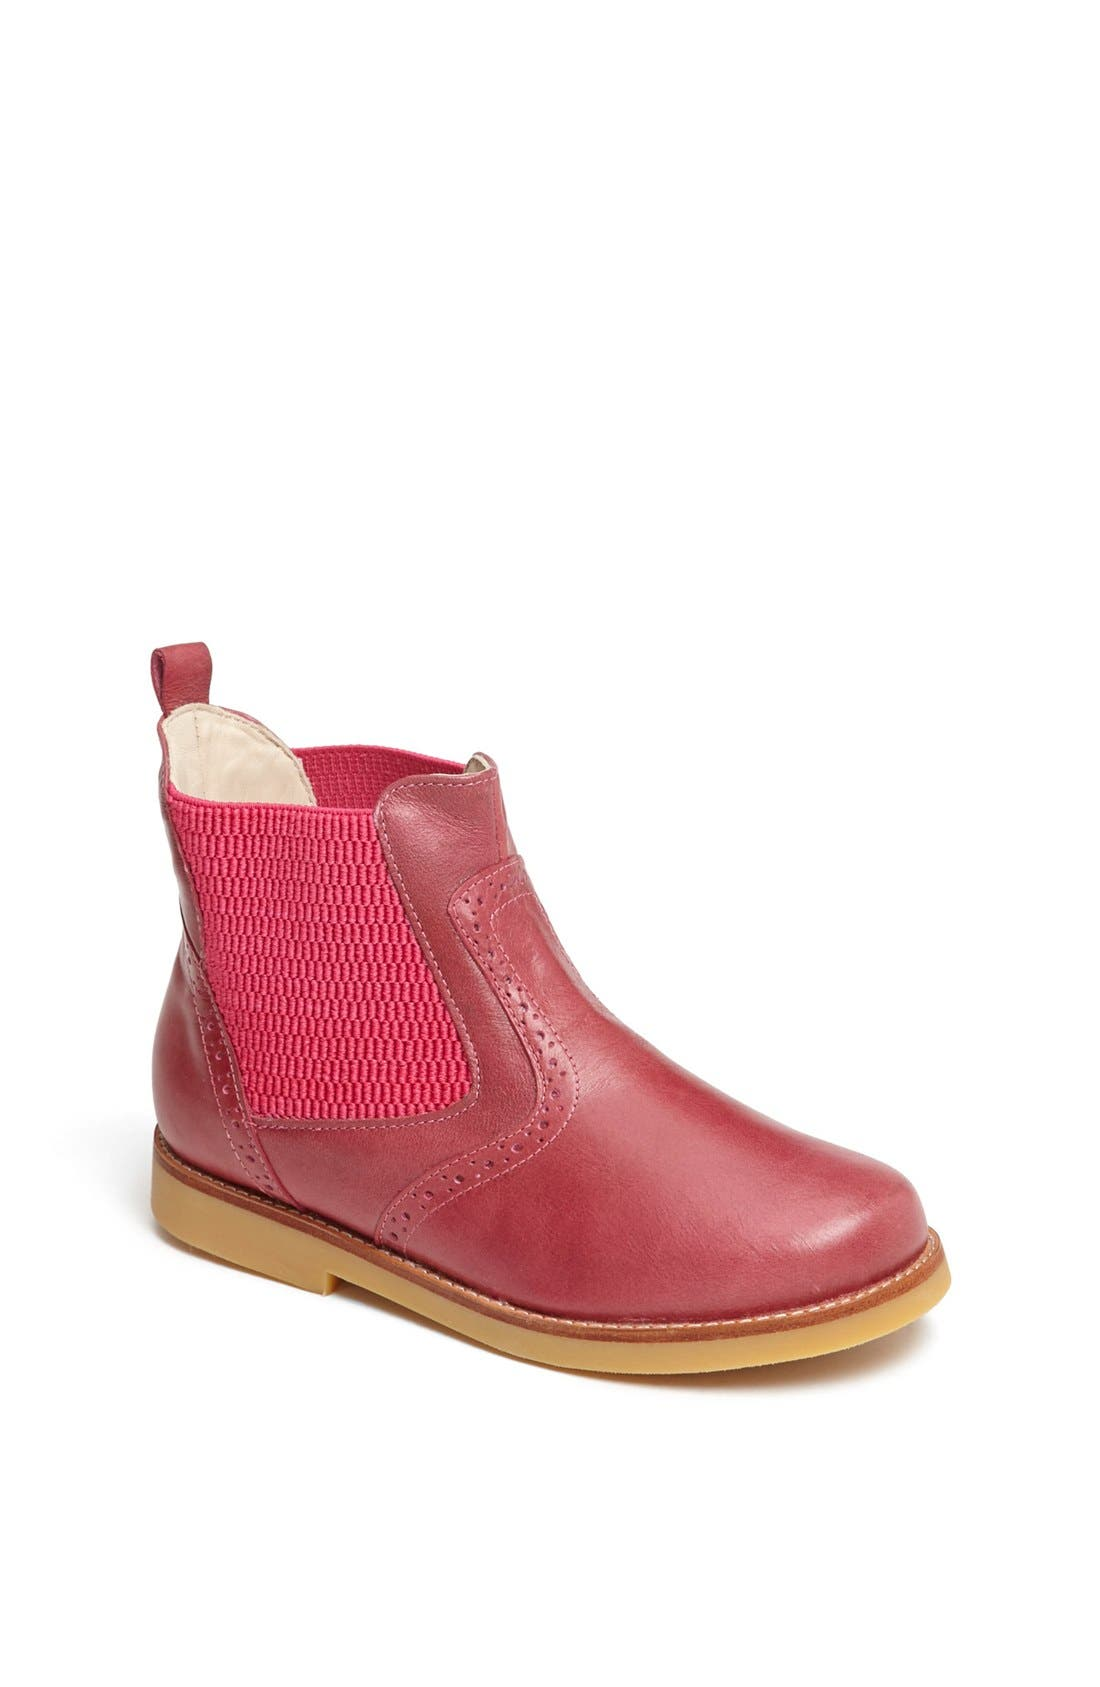 Leather Bootie,                             Main thumbnail 1, color,                             662